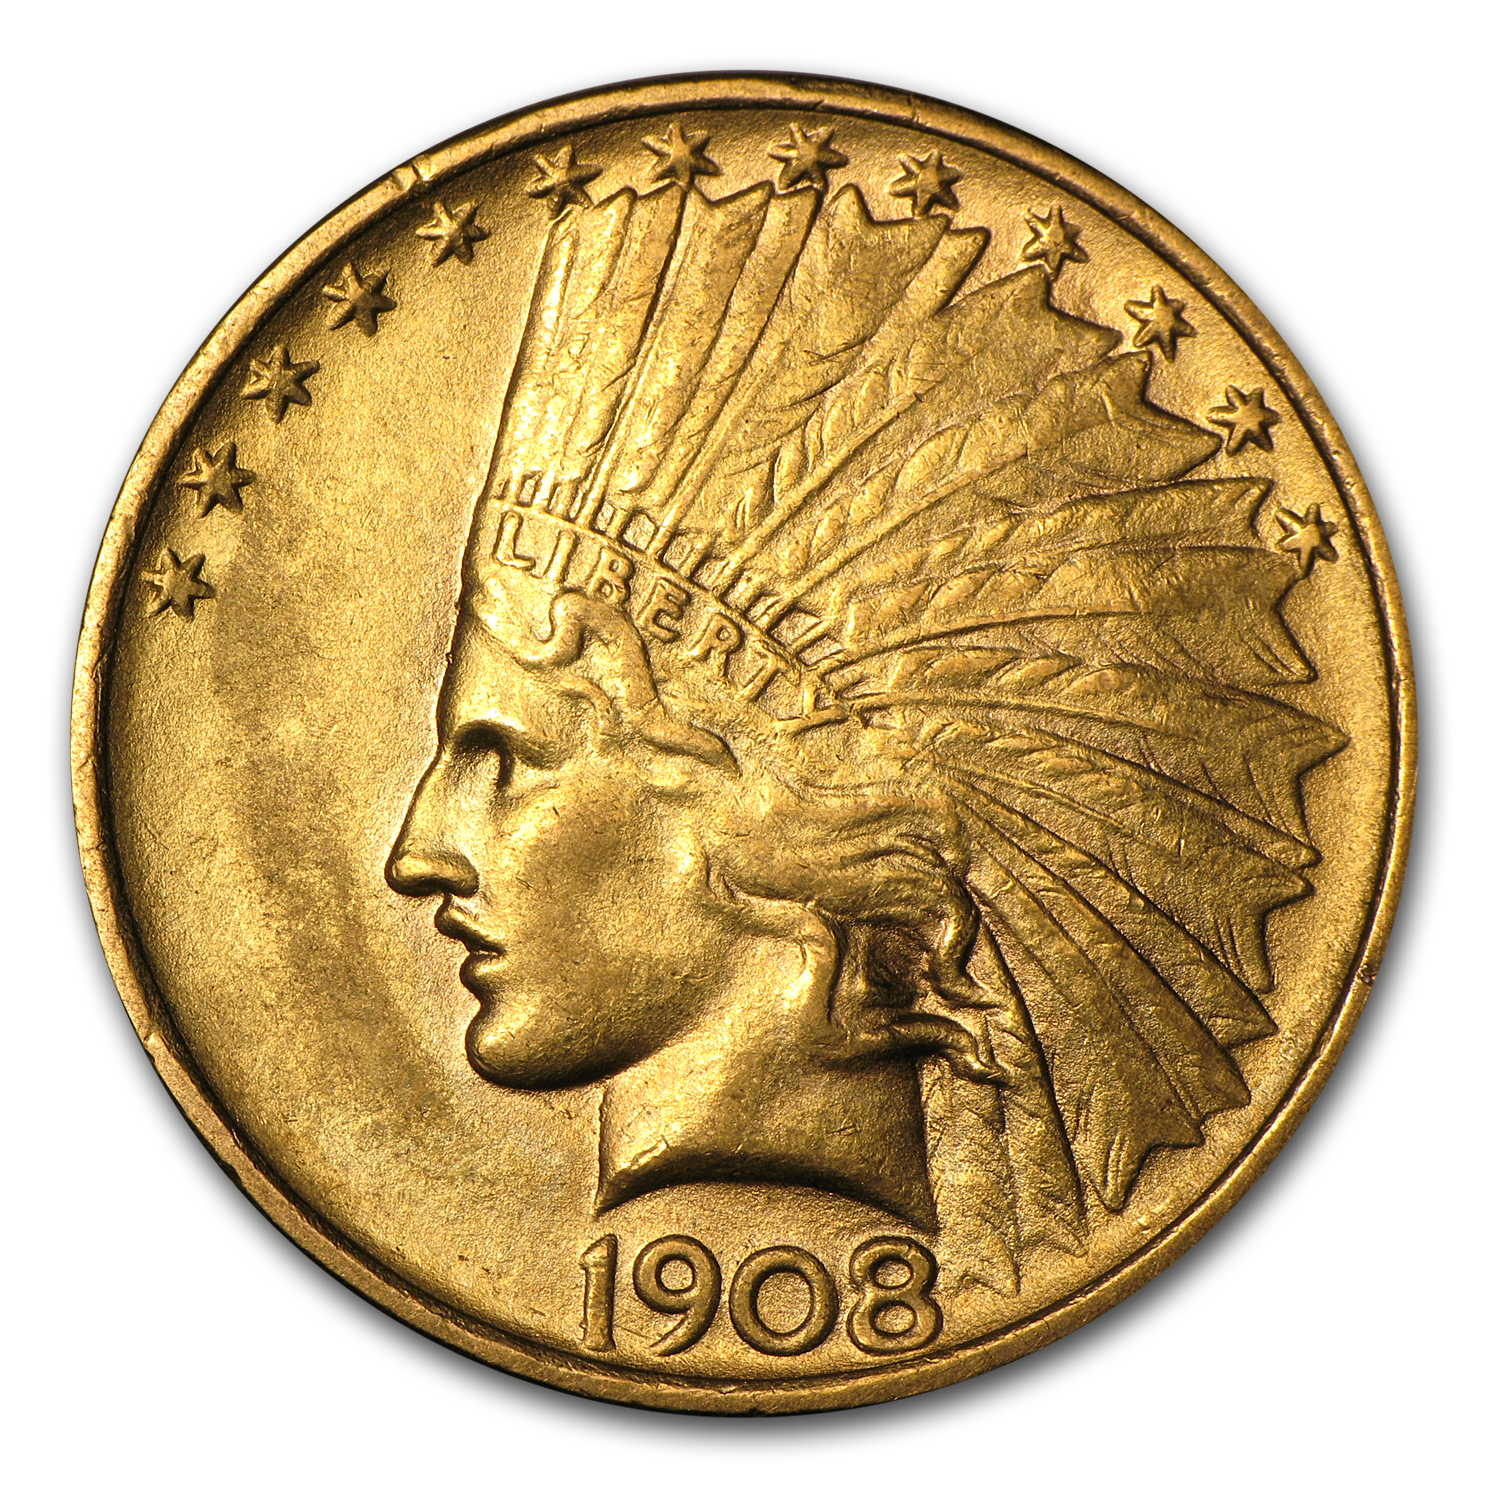 1908 $10 Indian Gold Eagle - No Motto - Almost Uncirculated